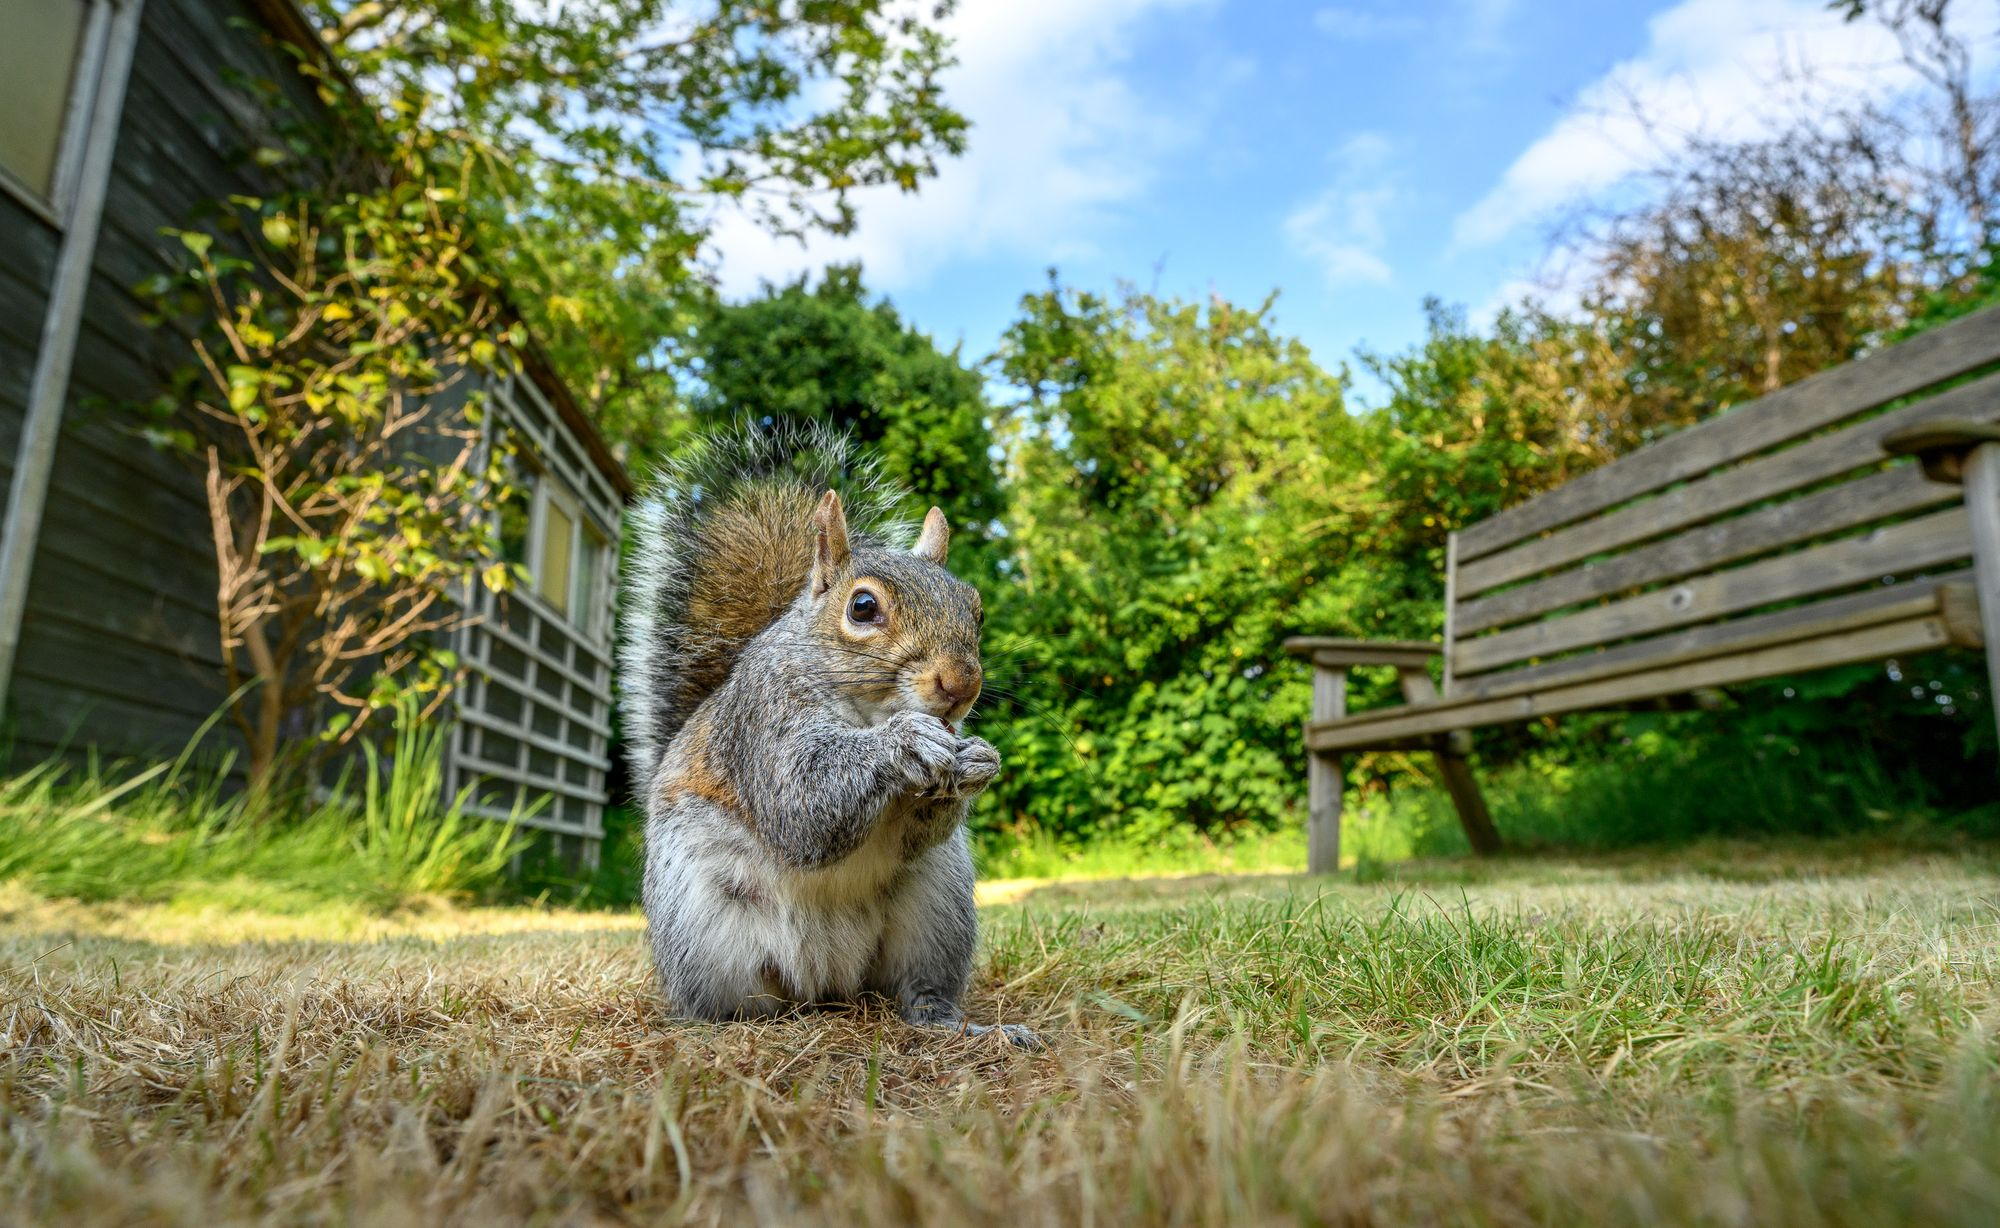 photographing squirrels, urban wildlife photography